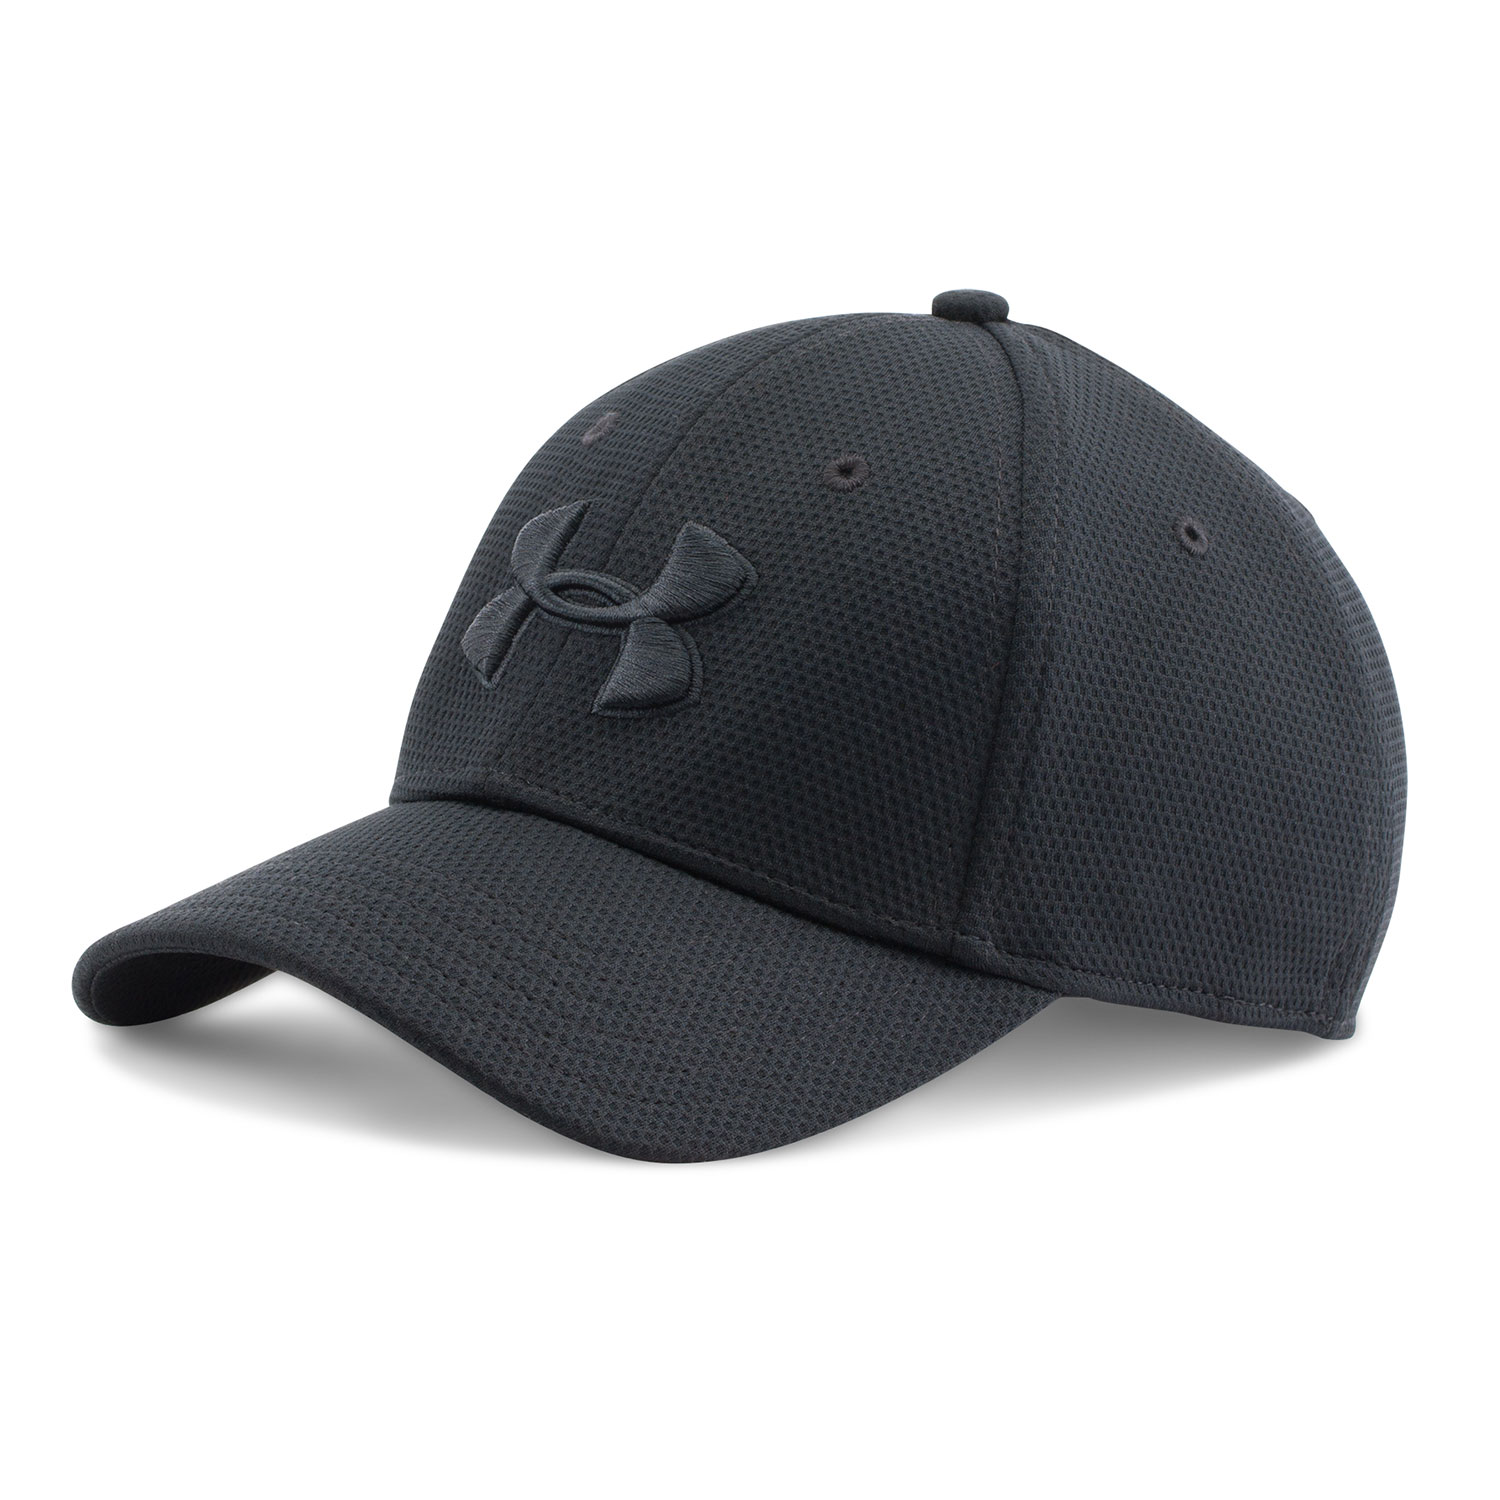 Under Armour Blitzing II Stretch Fit Cap 2a7eb71bb6d